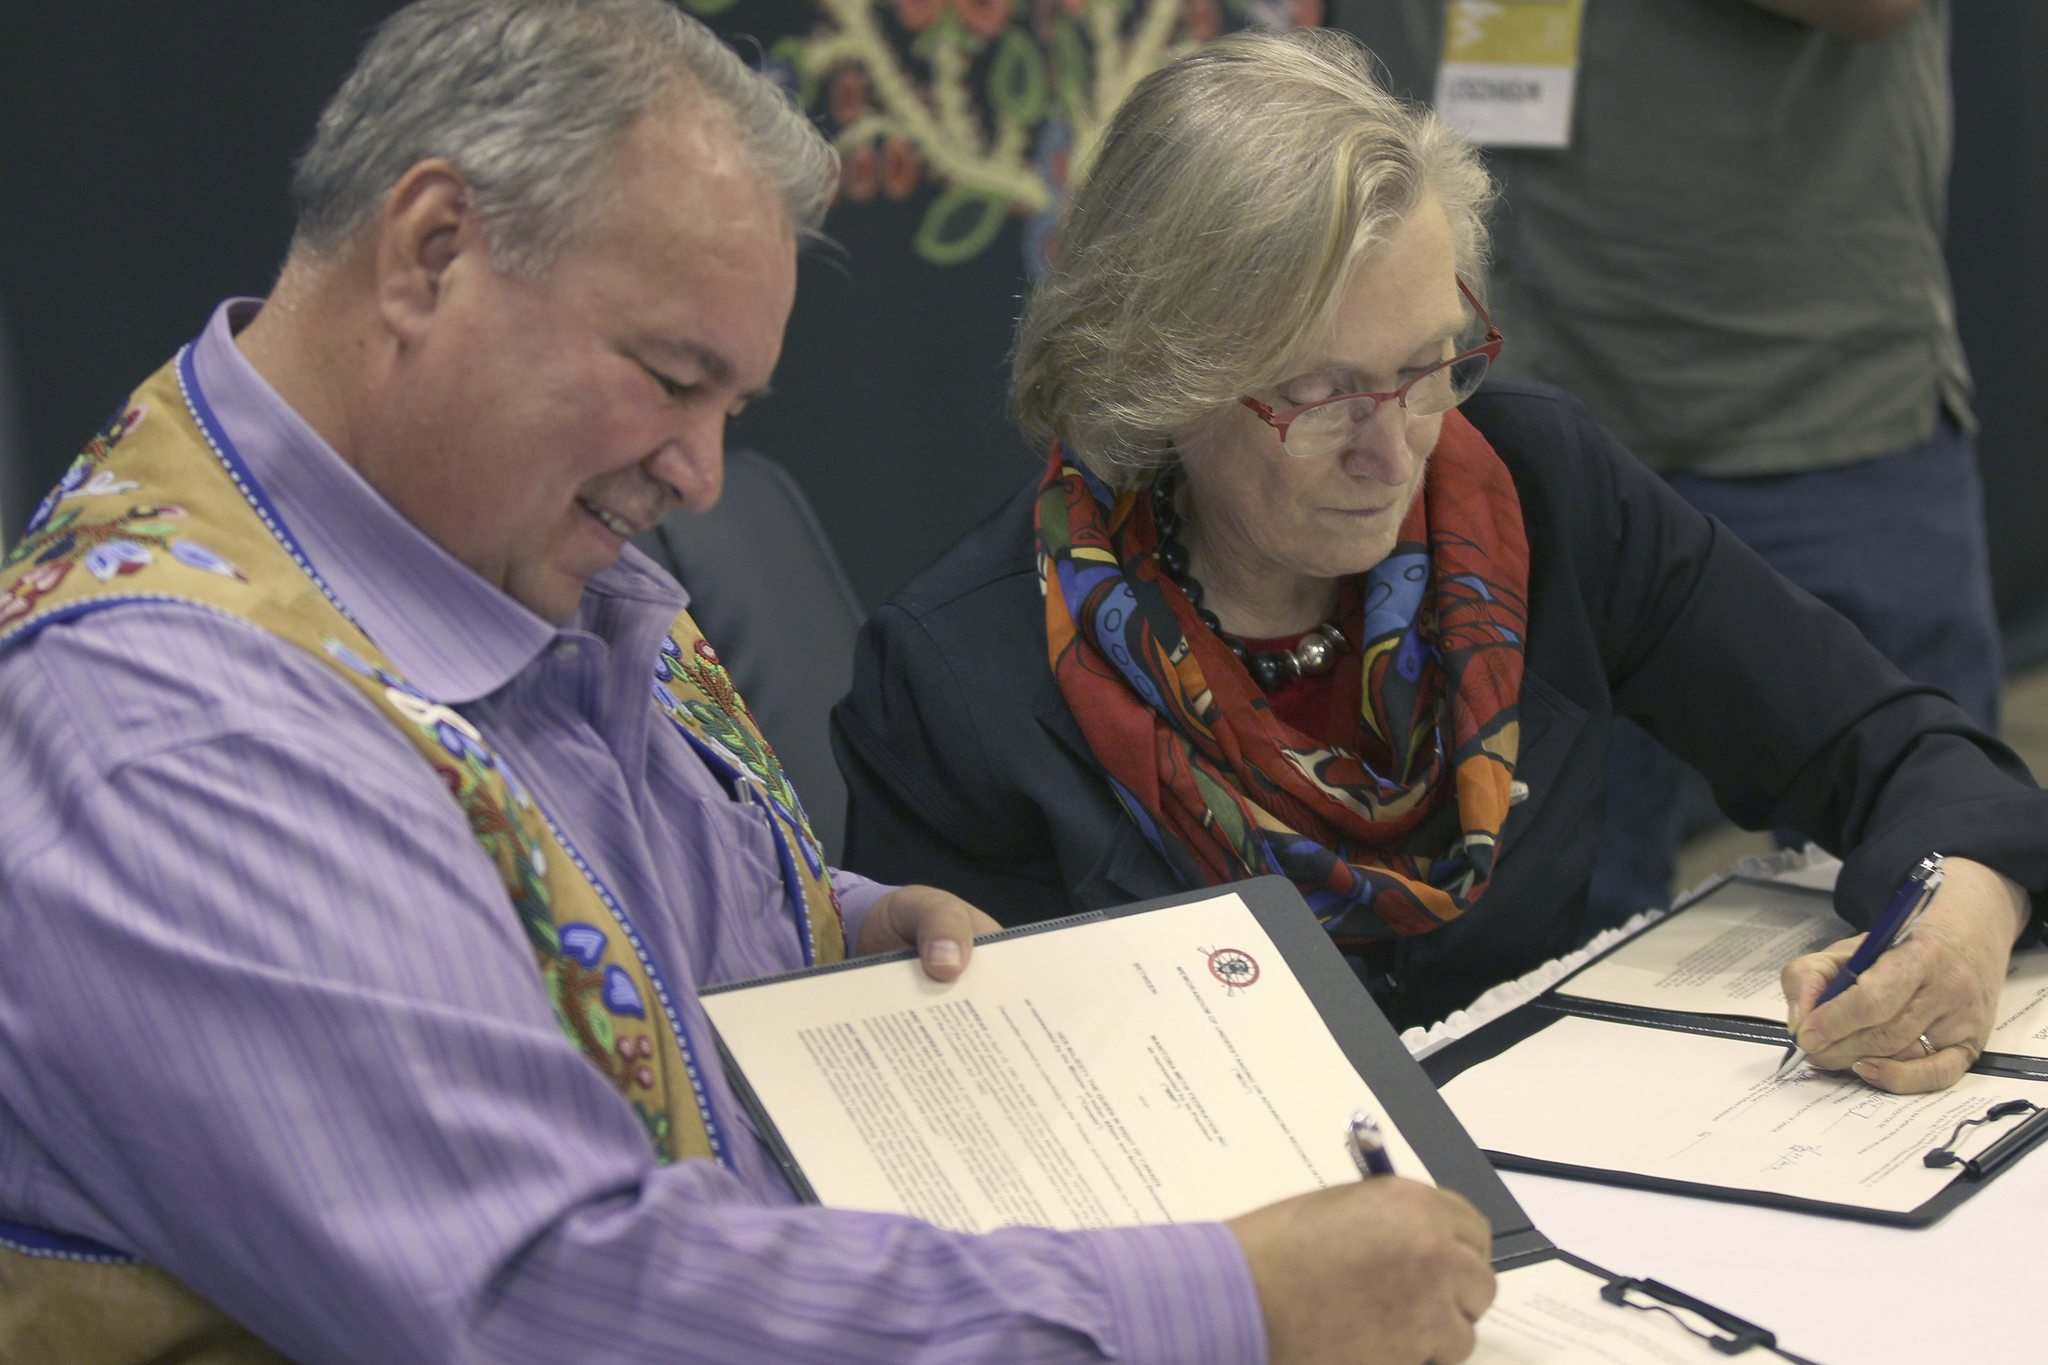 JOE BRYKSA / WINNIPEG FREE PRESSA historic signing today between the Manitoba Métis Federation and the federal government occurred in Winnipeg between Manitoba Métis Federation President, David Chartrand, and federal minister of indigenous and northern affairs, Carolyn Bennett. The signing of the Memorandum of Understanding will explore talks on reconciliation with the Manitoba Métis community.</p>